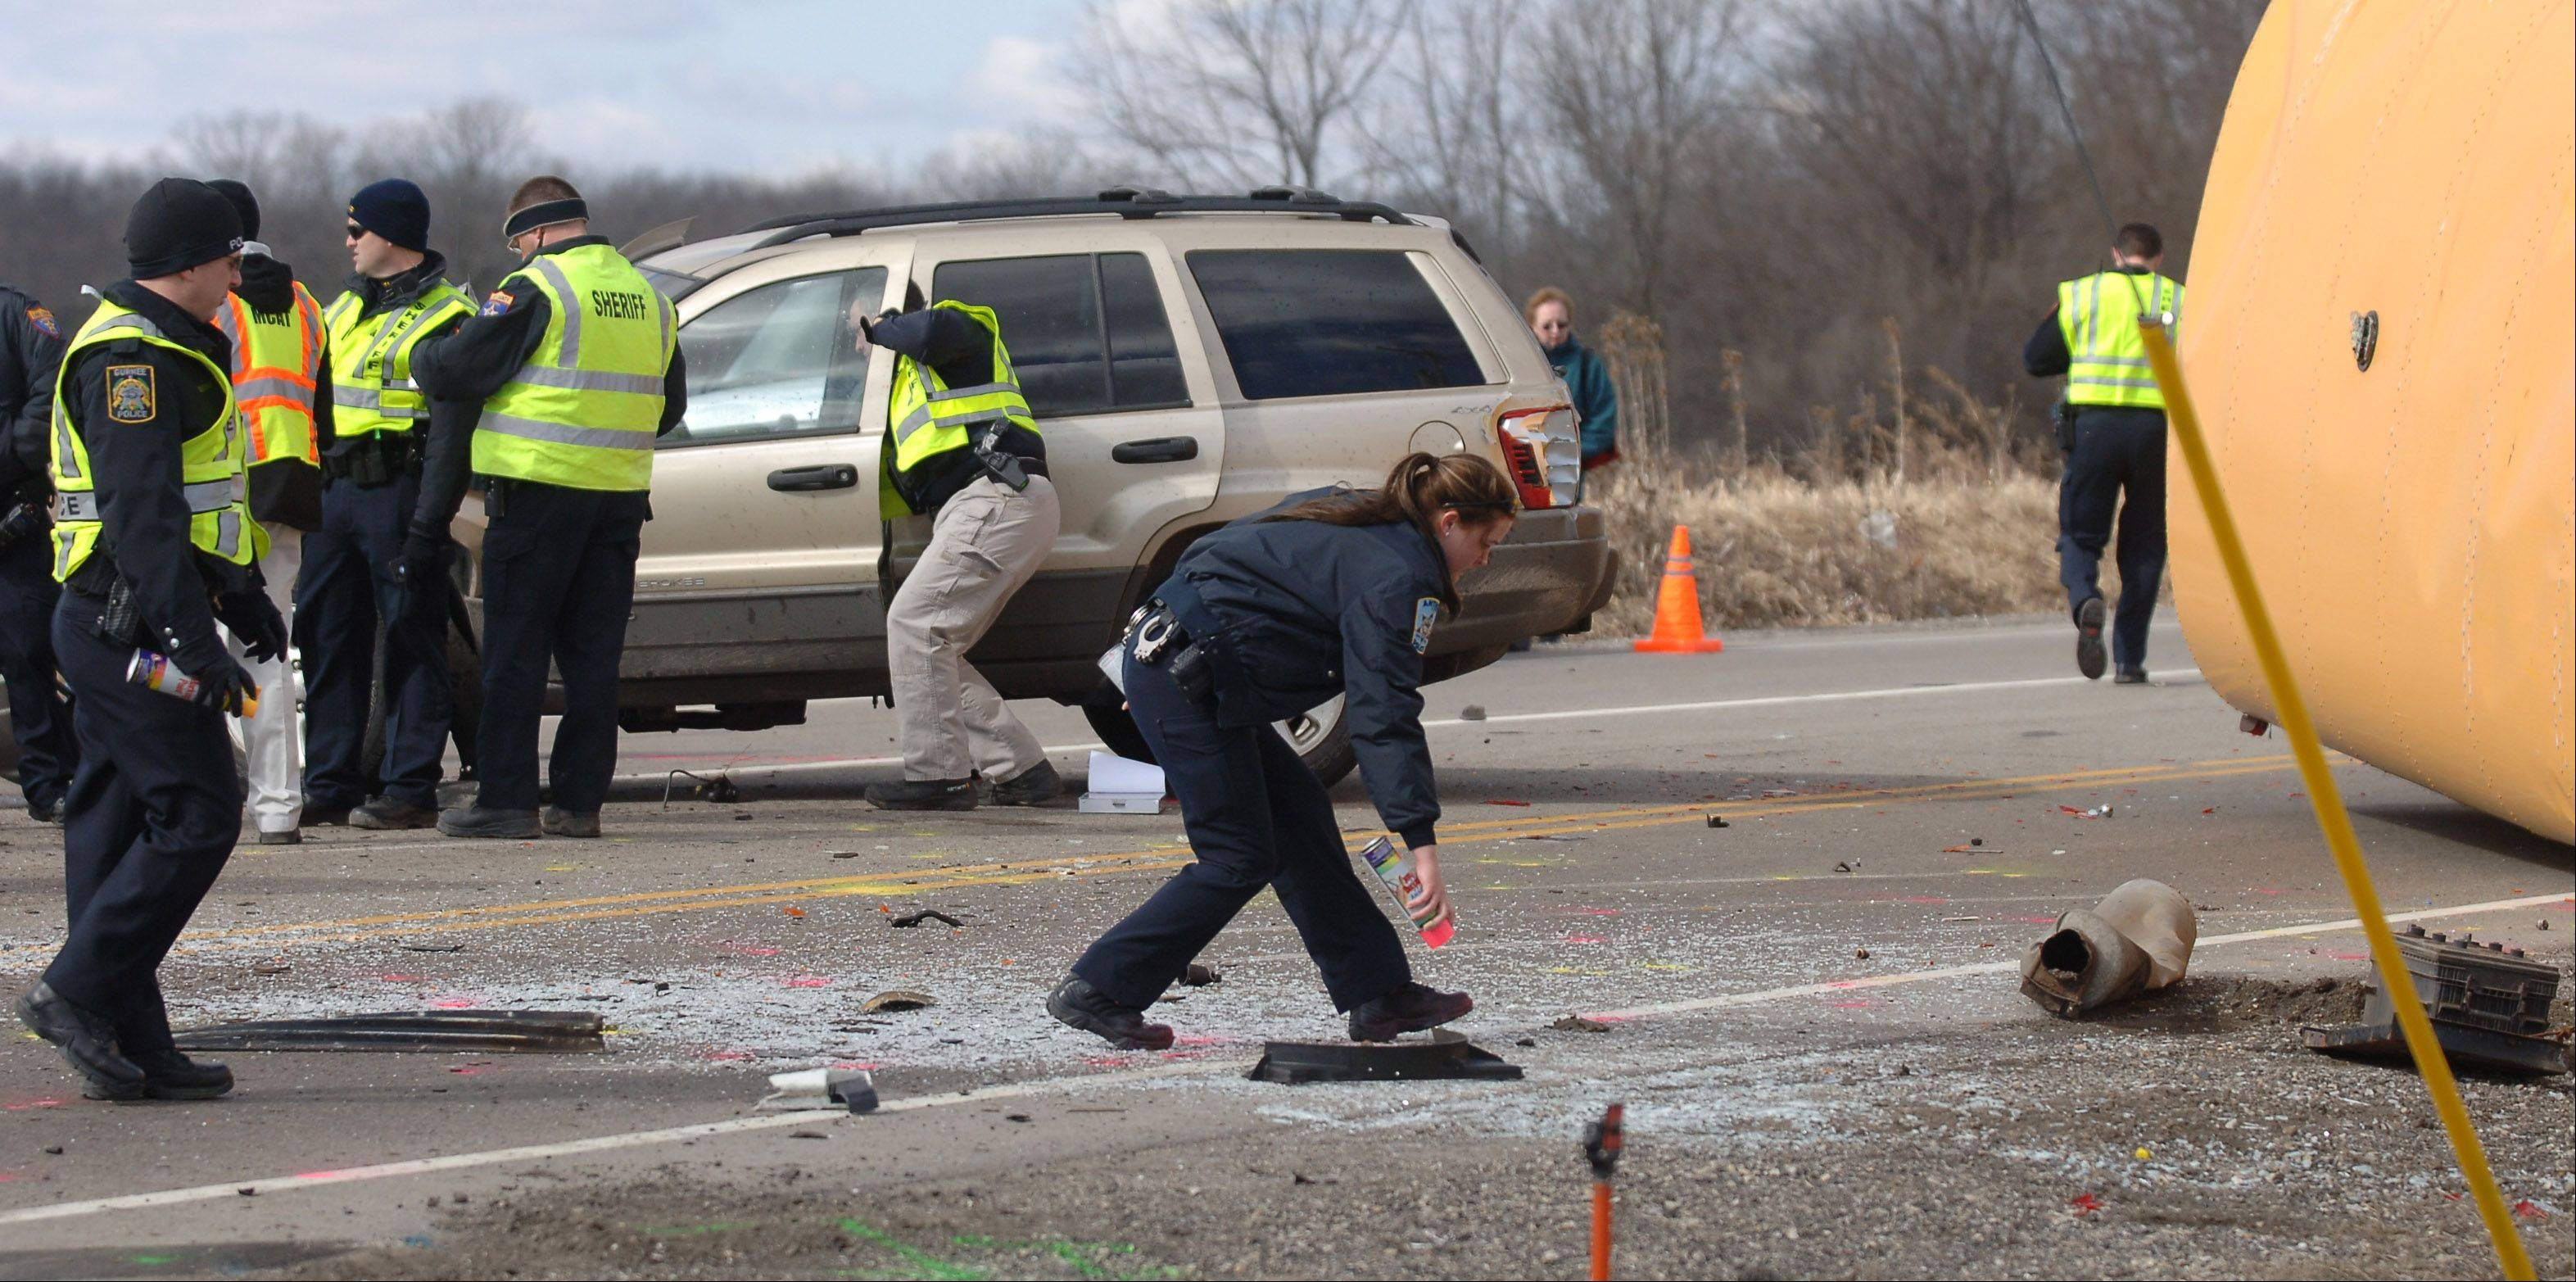 Officials mark the pavement with spray paint at the scene of fatal crash involving two vehicles and a school bus Friday morning at Route 173 and N. Kilbourne Road near Wadsworth.